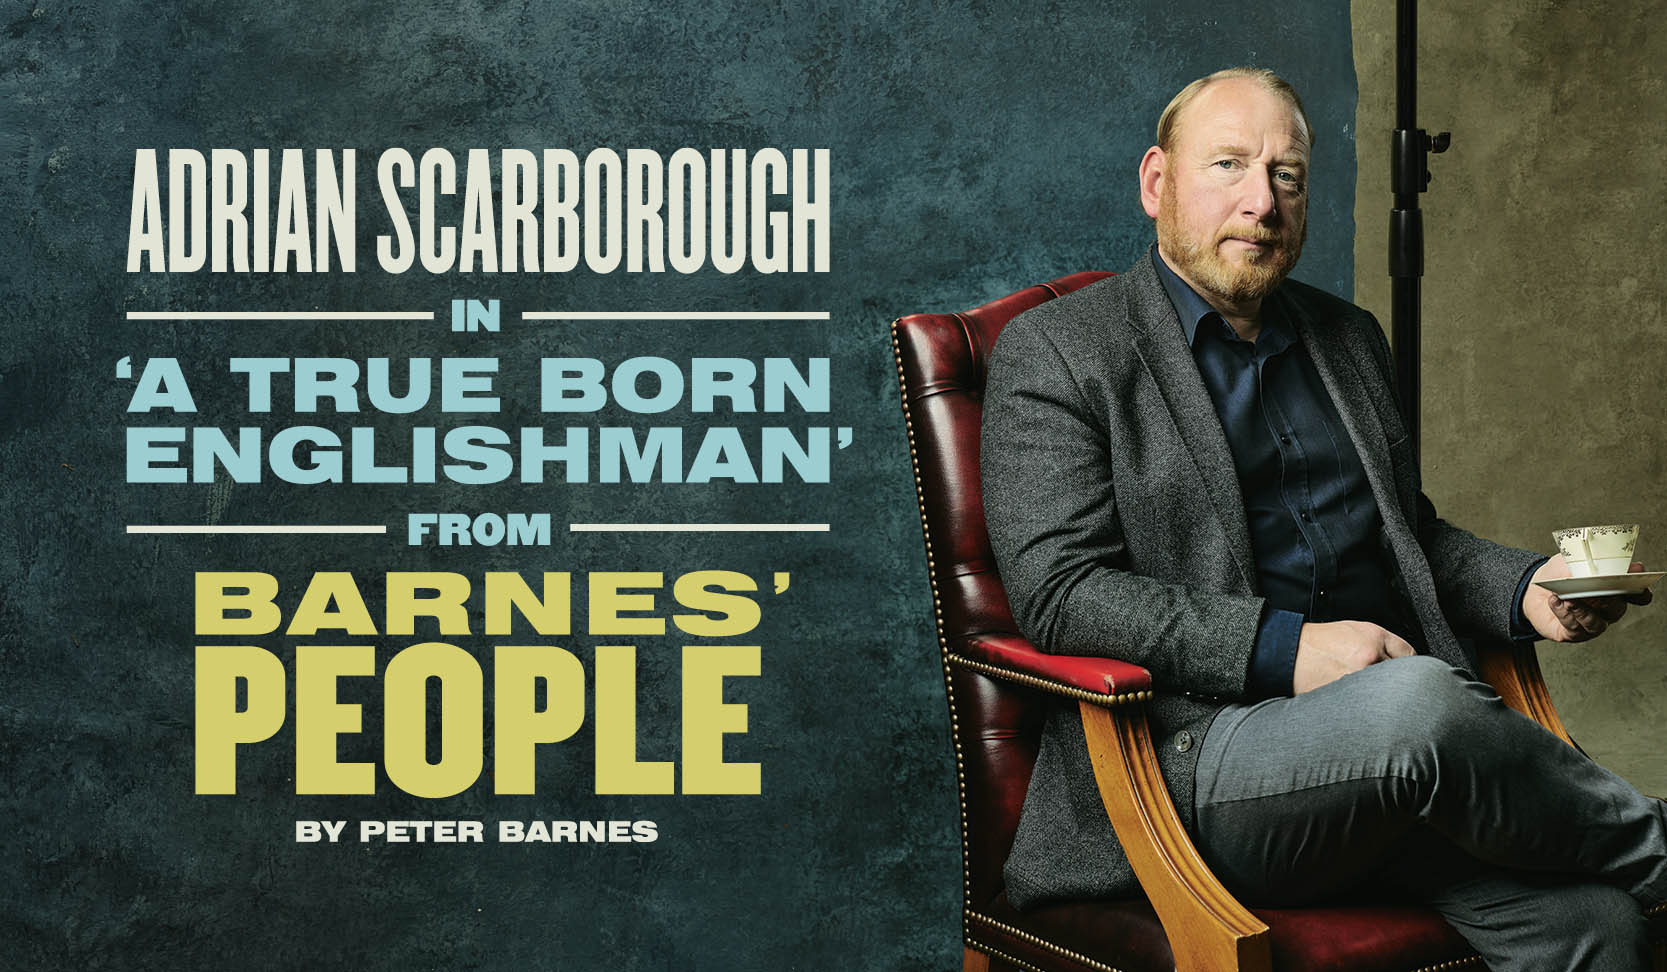 Barnes' People - A True Born Englishman starring Adrian Scarborough